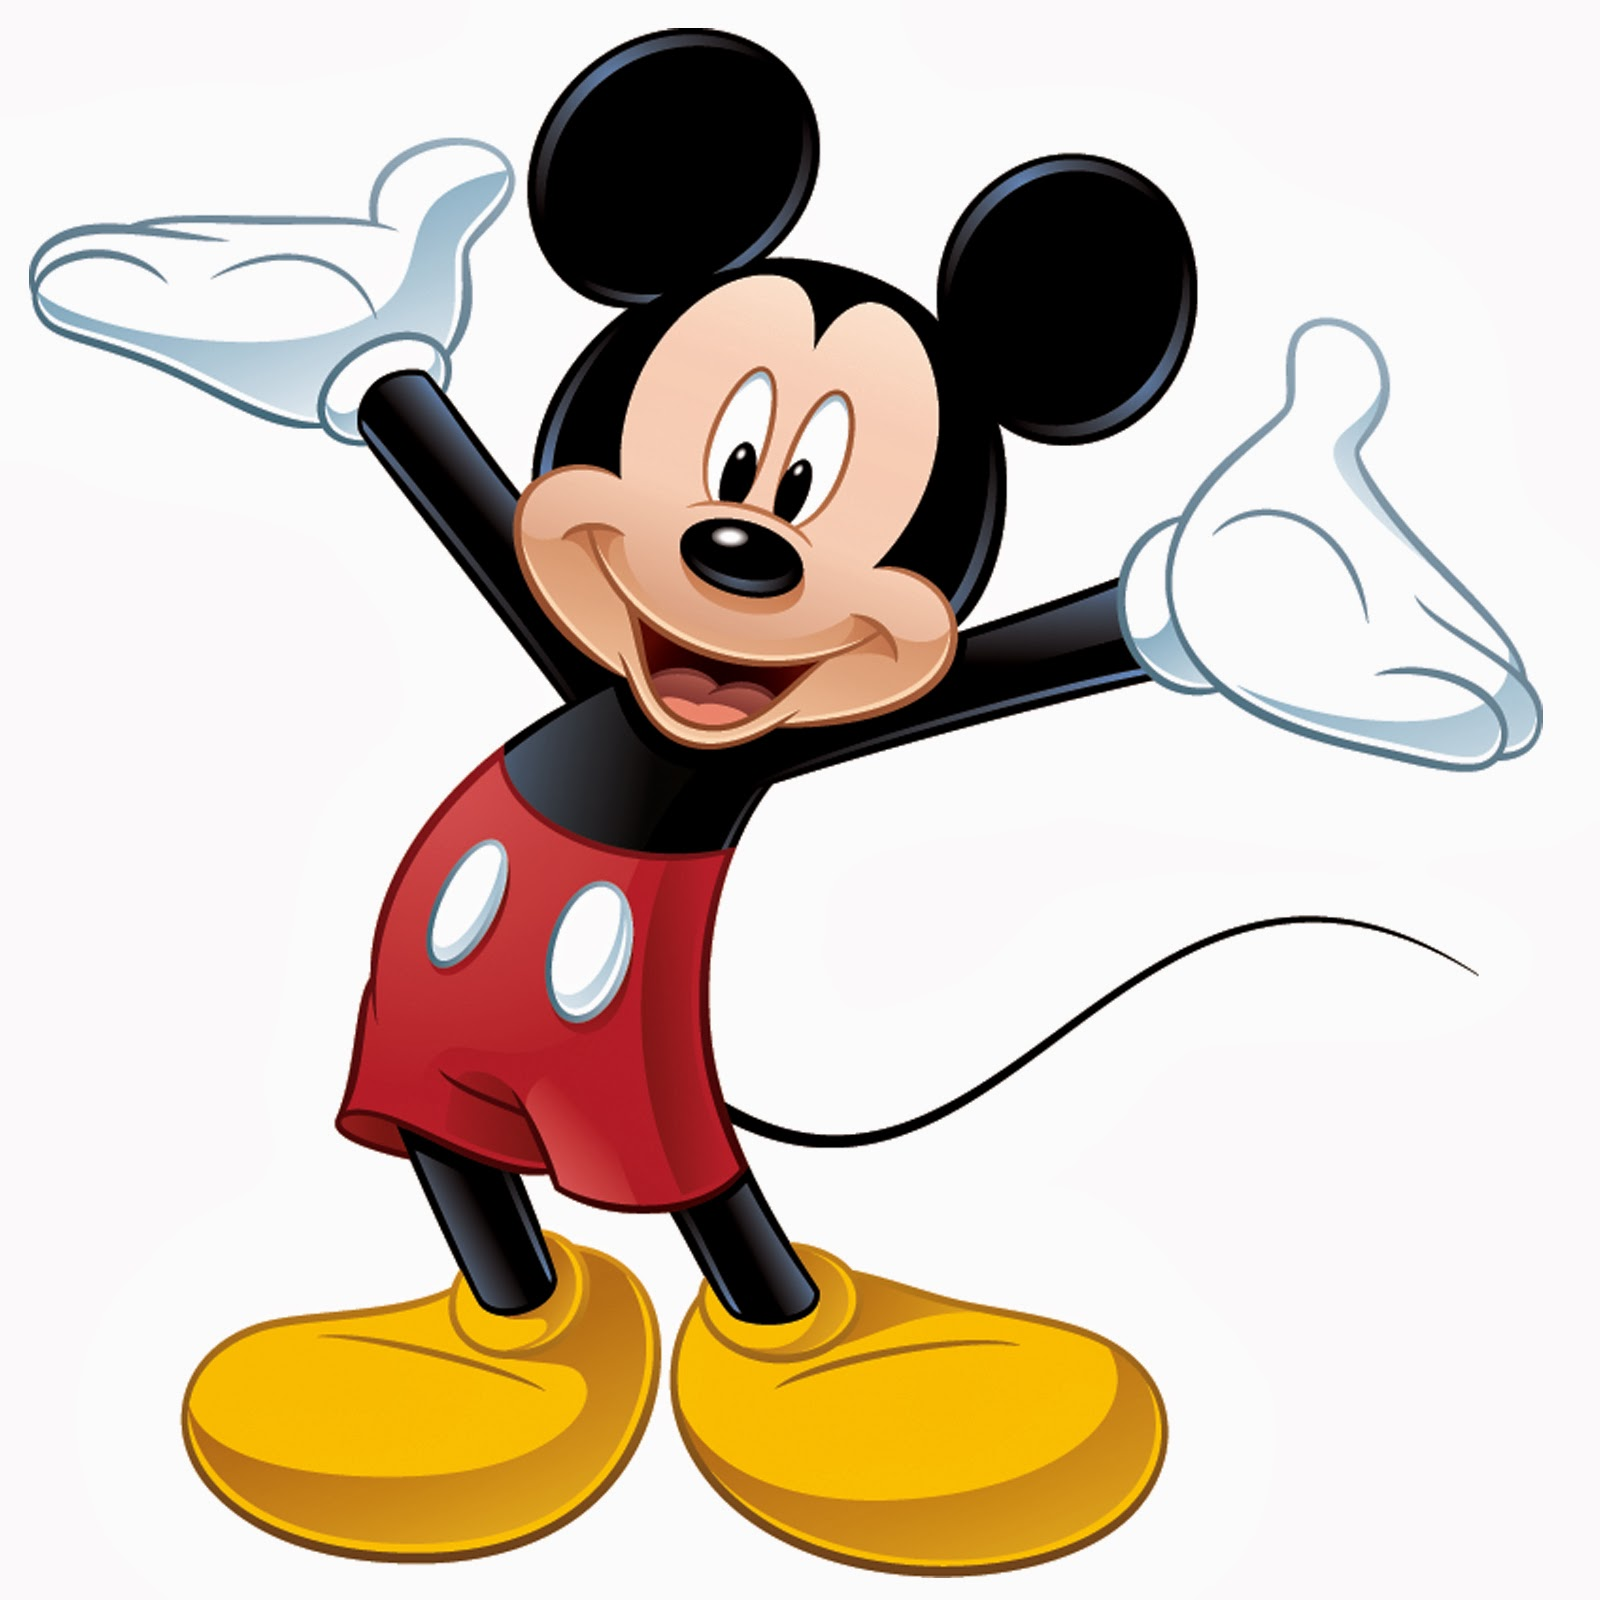 Topolino disney wiki fandom powered by wikia